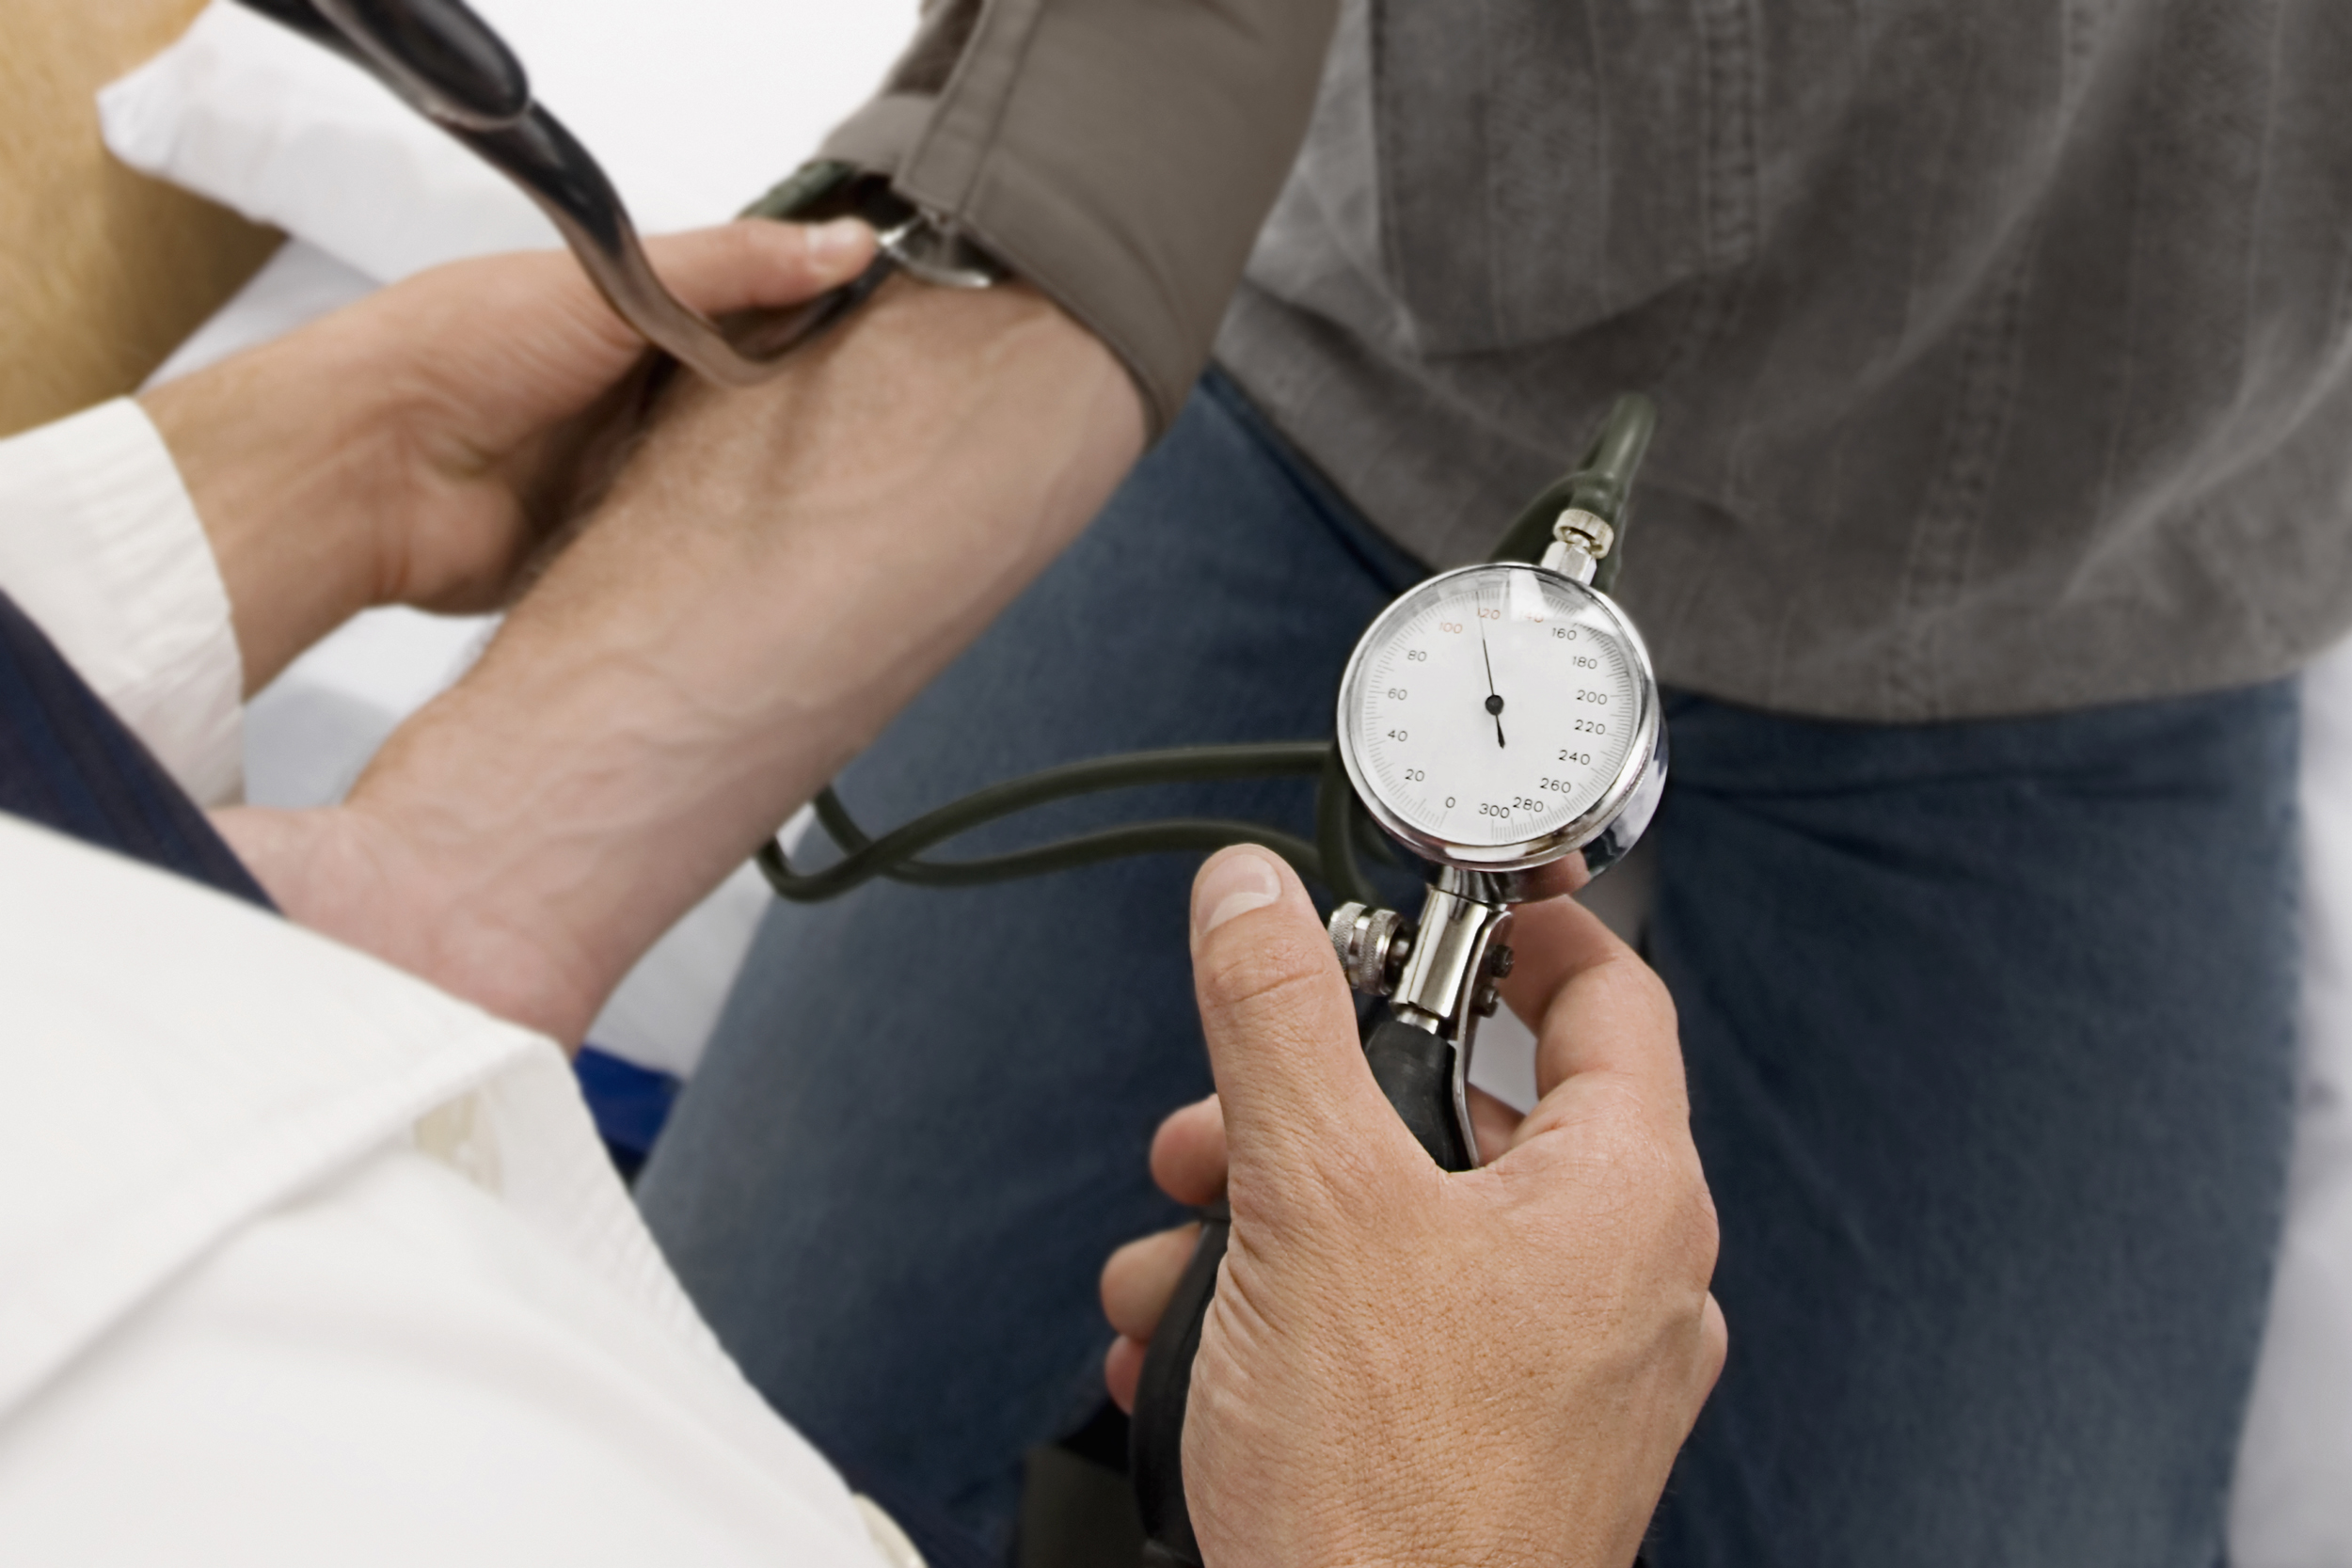 High blood pressure before age 40 linked to earlier strokes